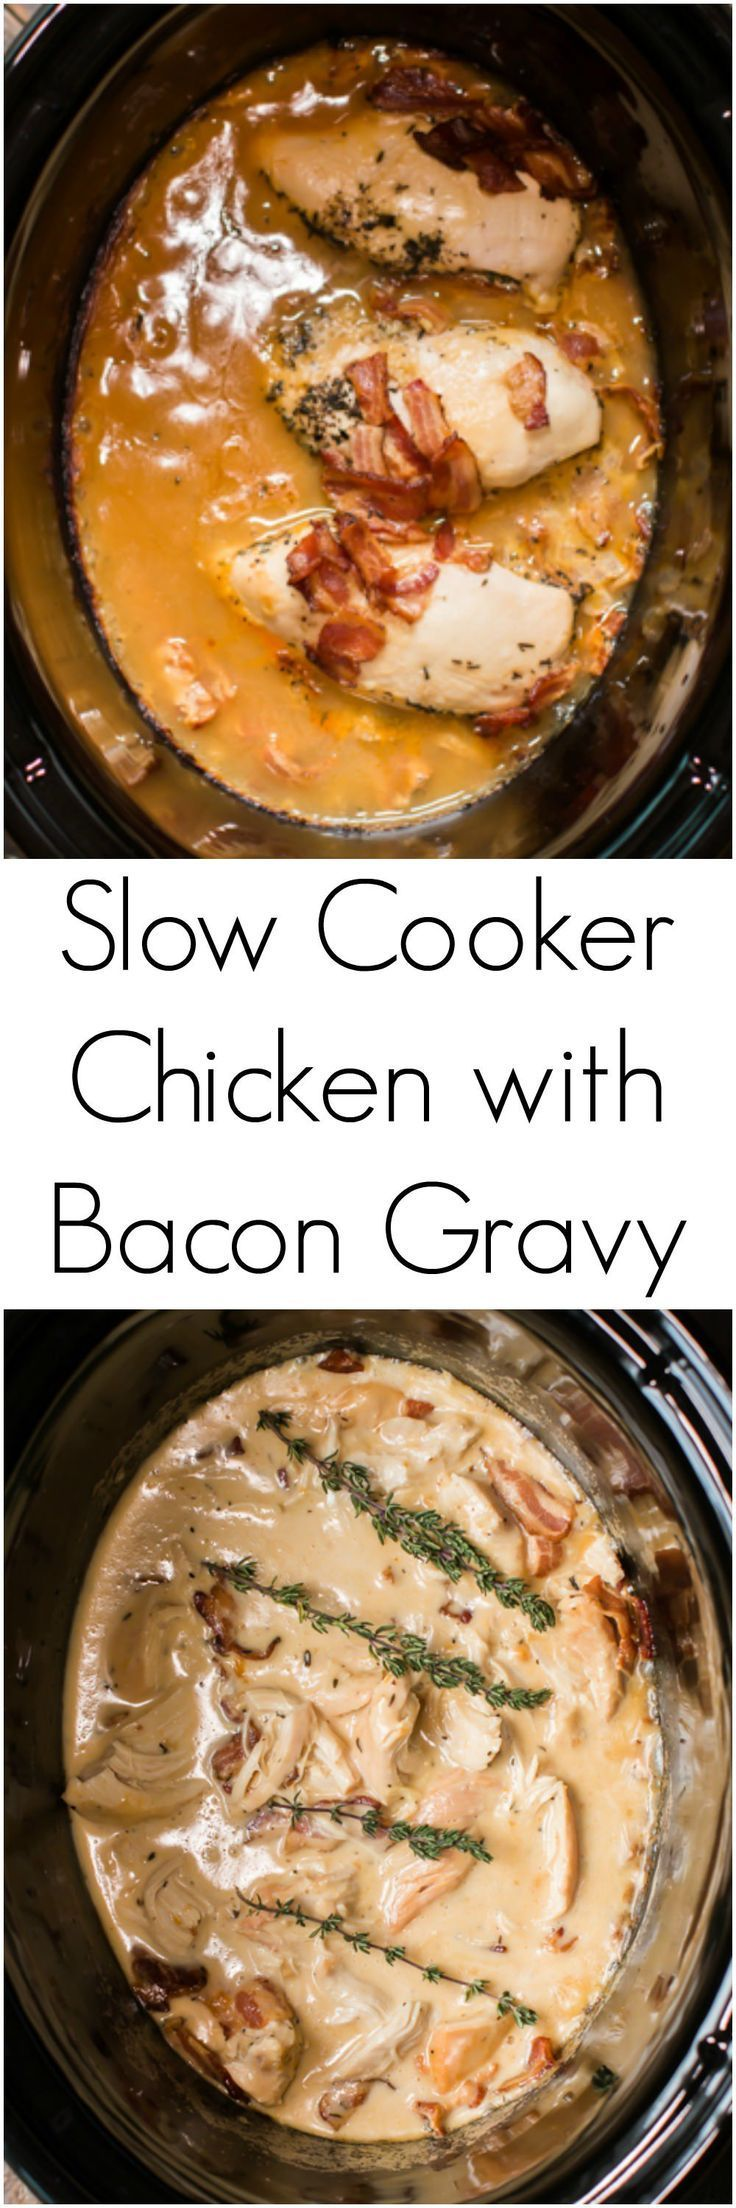 Slow Cooker Chicken with Bacon Gravy -